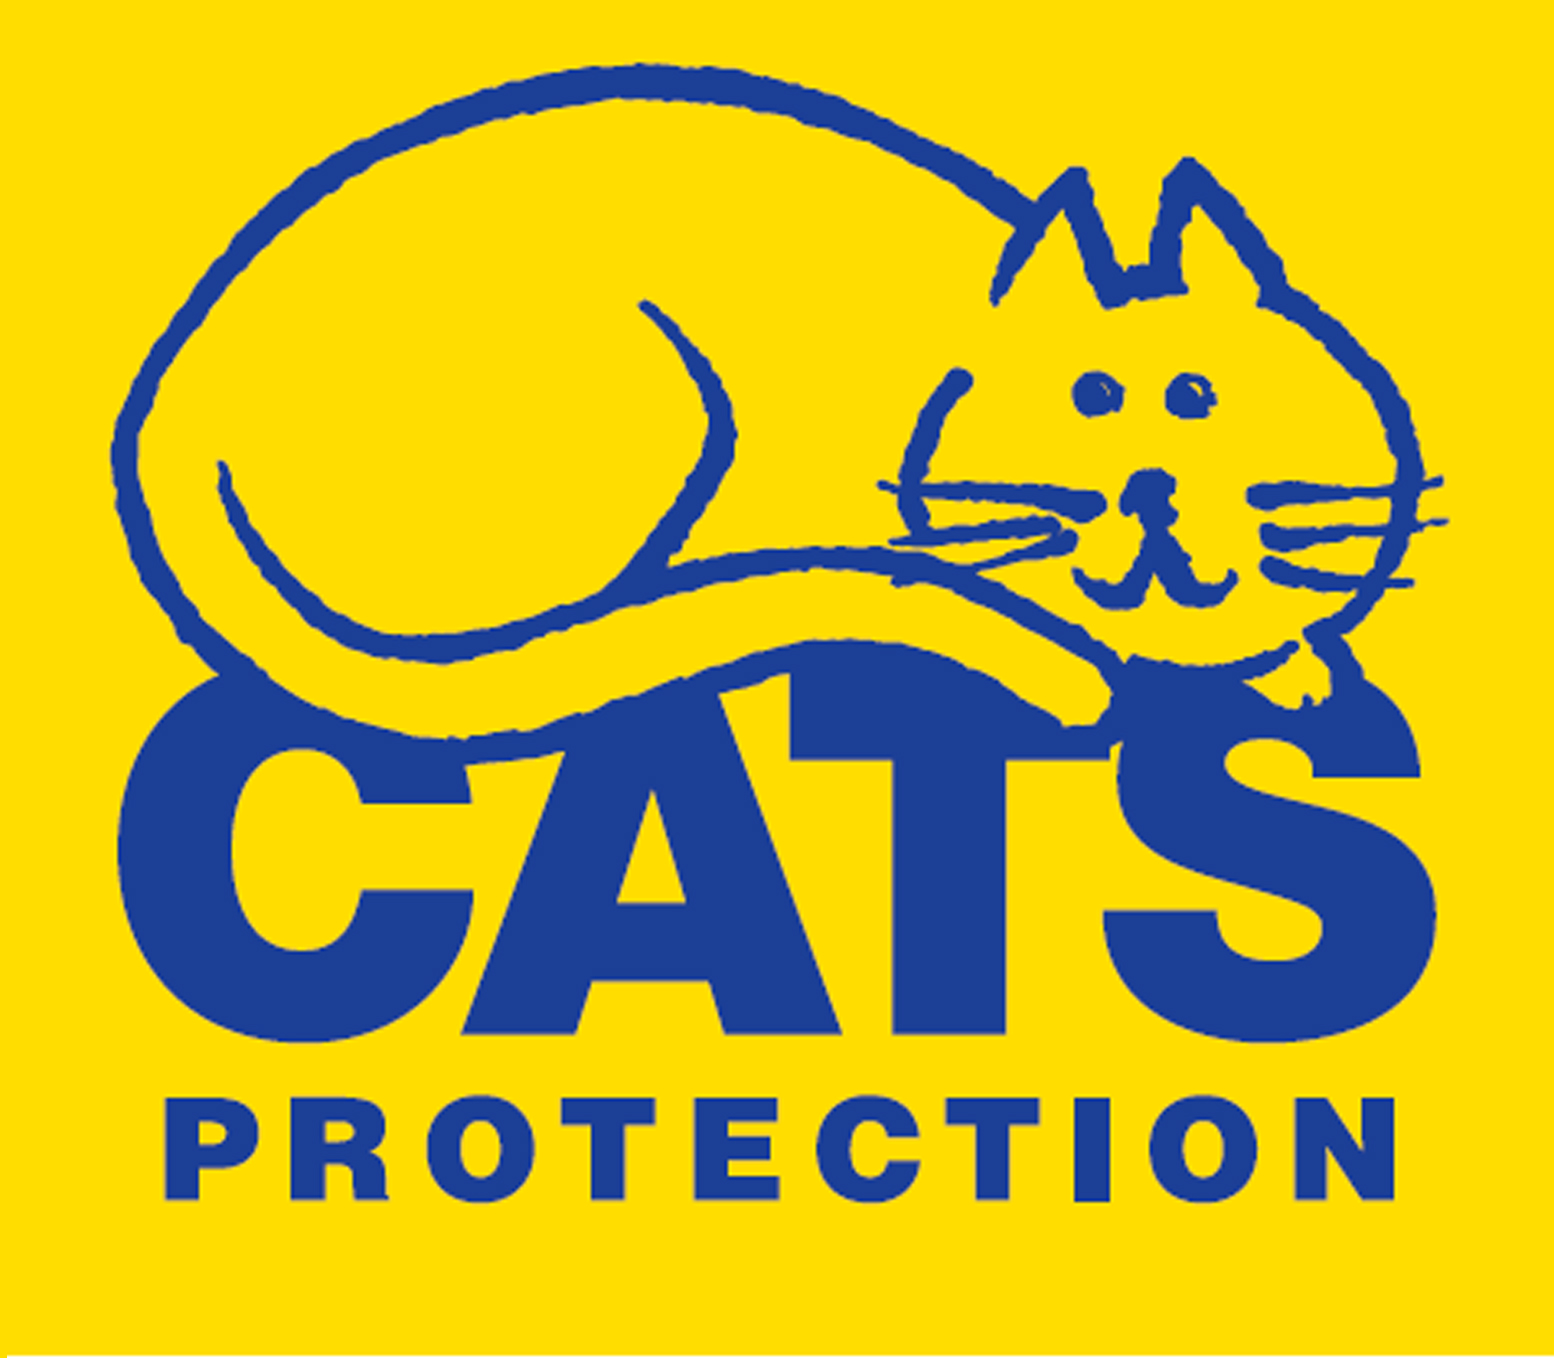 Cats Protection - 90th Anniversary